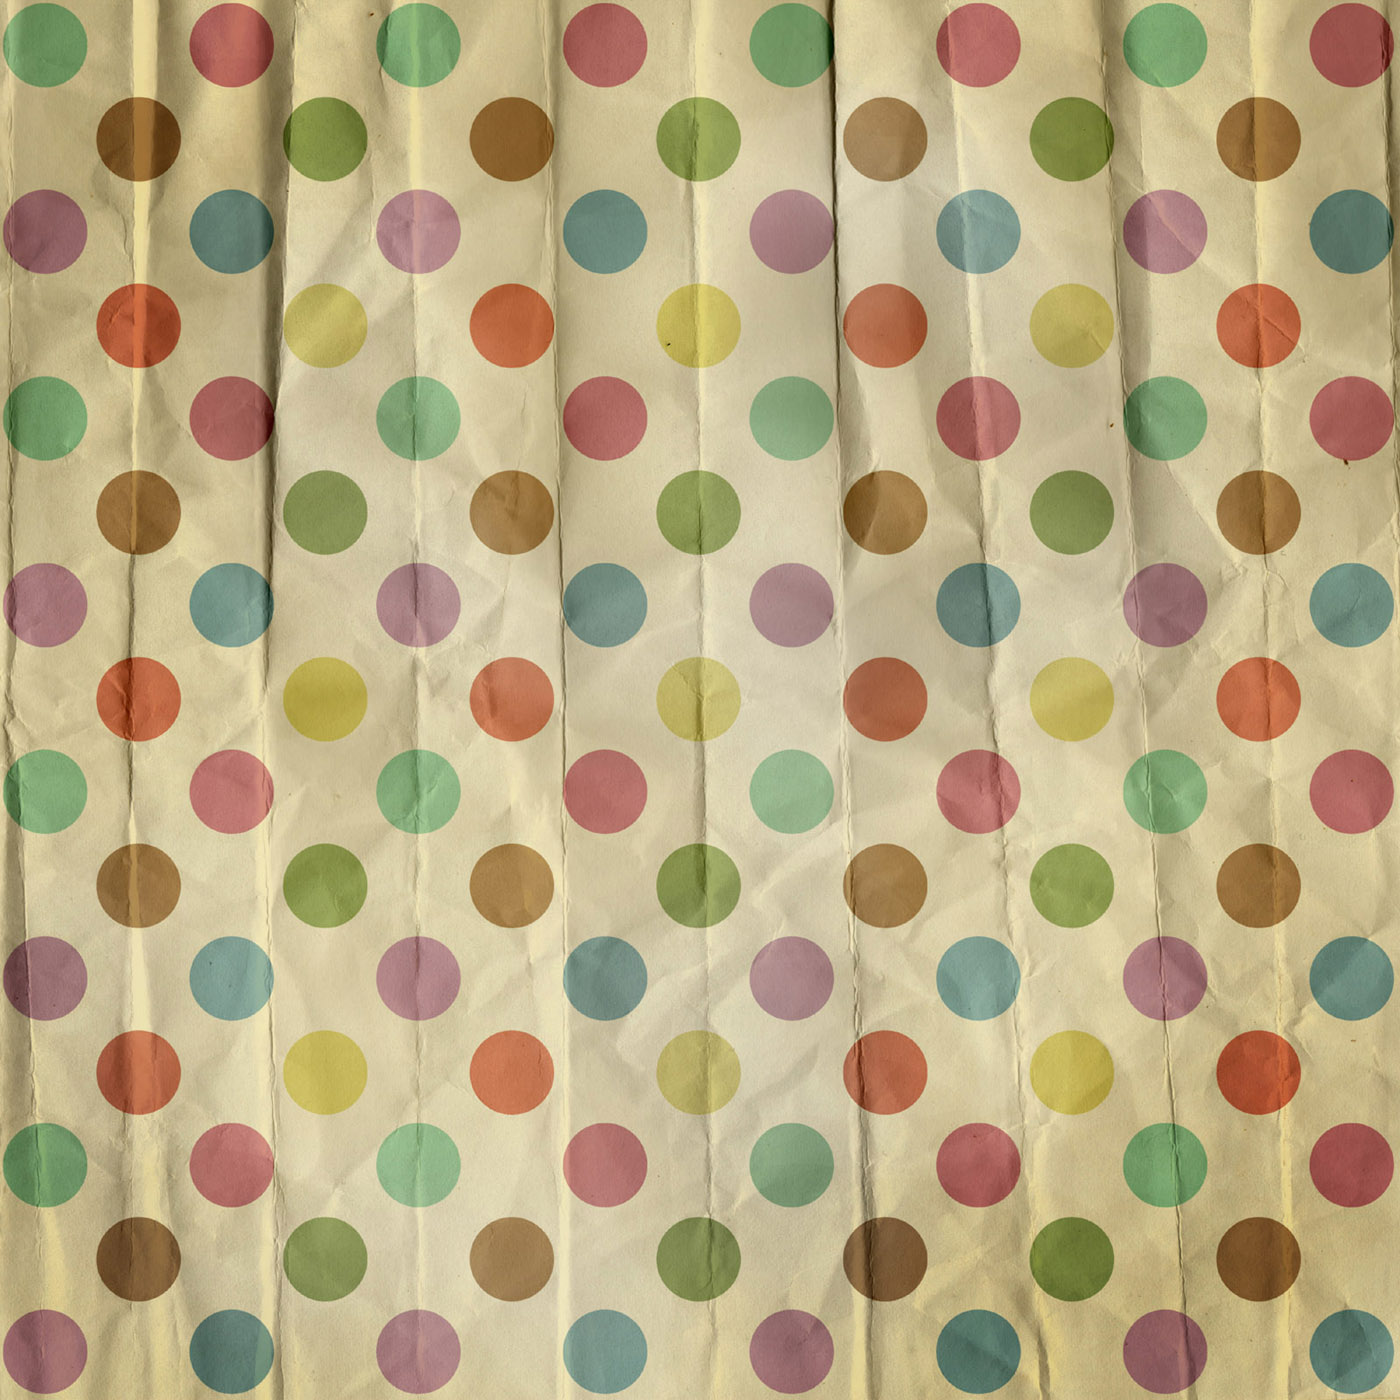 Fold pattern background 19211